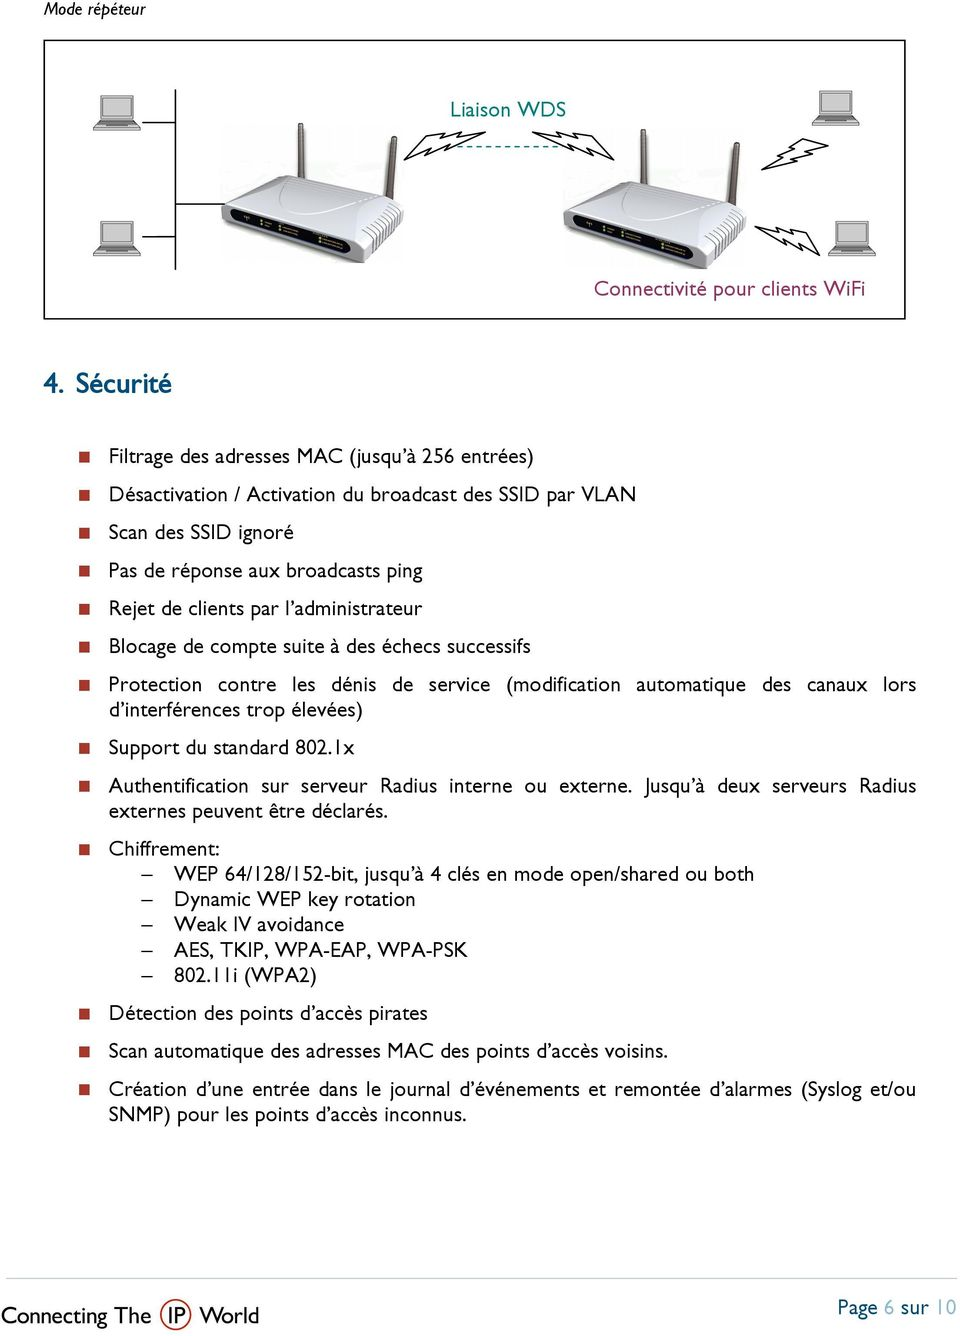 Désactivation / Activation du broadcast des SSID par VLAN Protection contre les dénis de service (modification automatique des canaux lors d interférences trop élevées) Sup port du standard 802.